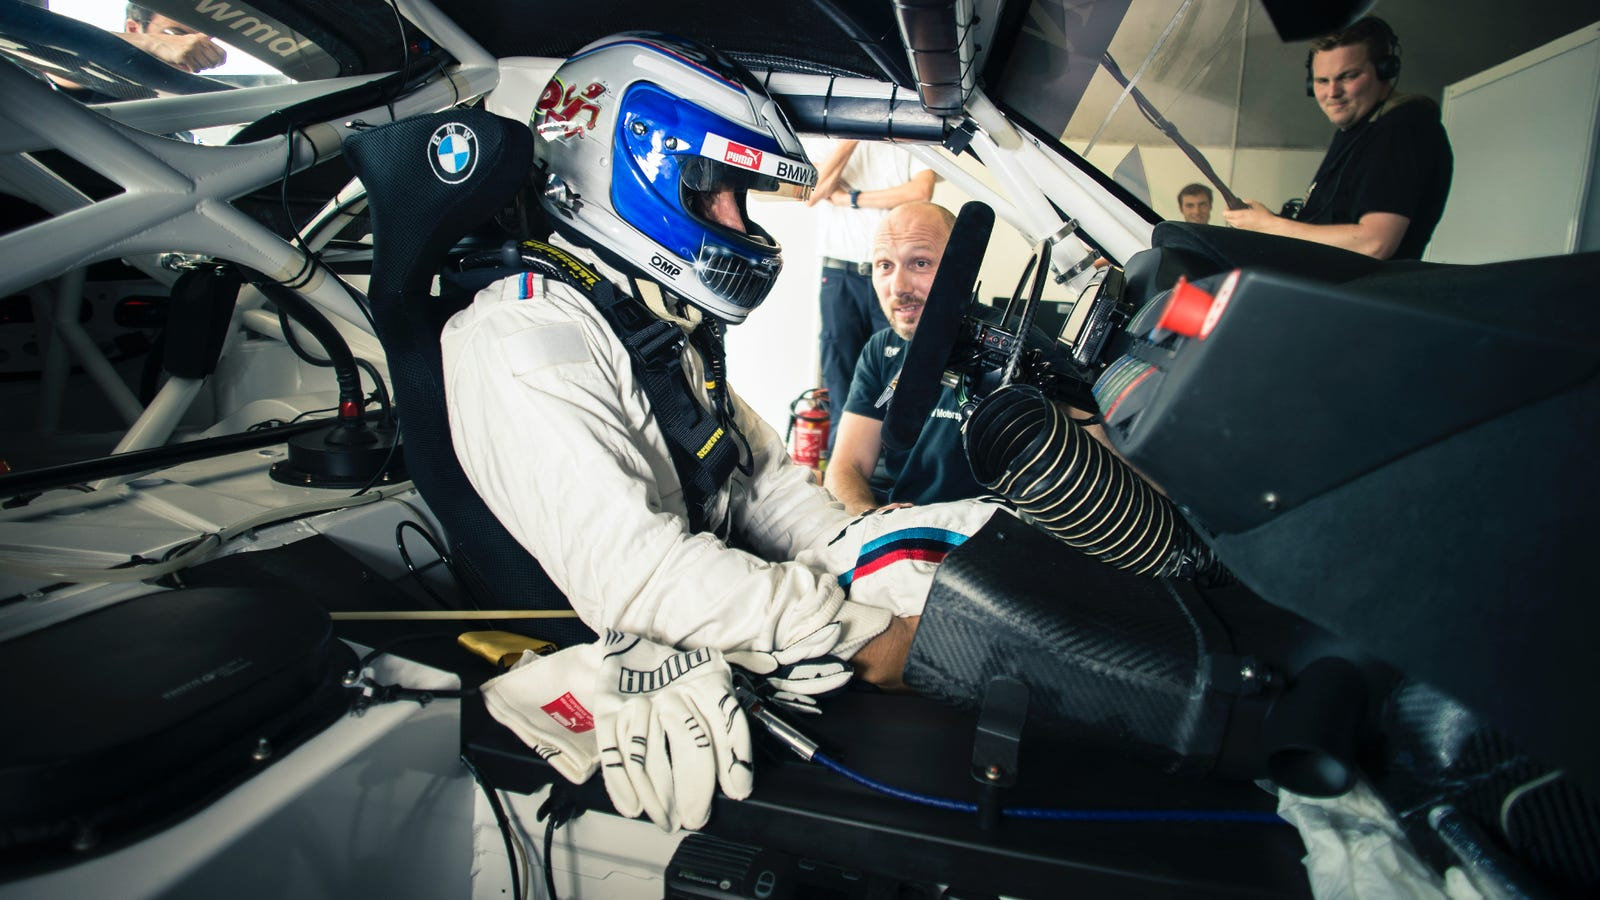 Double Amputee Racing Badass Alex Zanardi Will Do The 2019